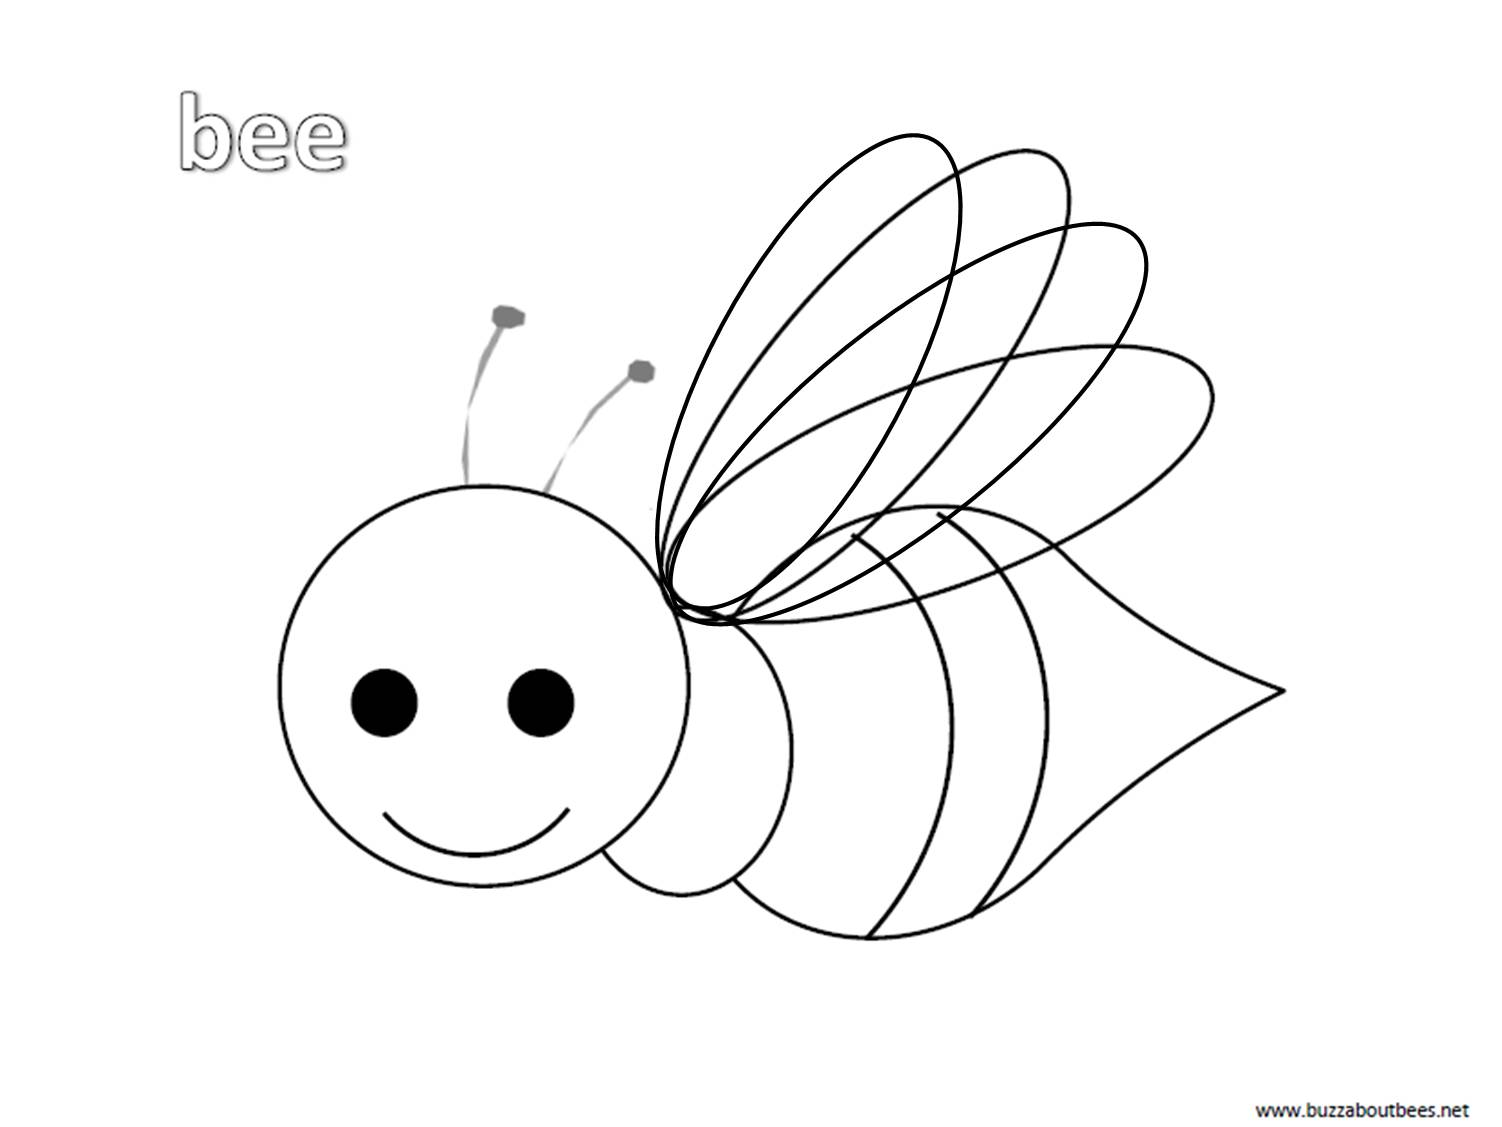 Bee Coloring Pages Educational Activity sheets And Puzzles Free